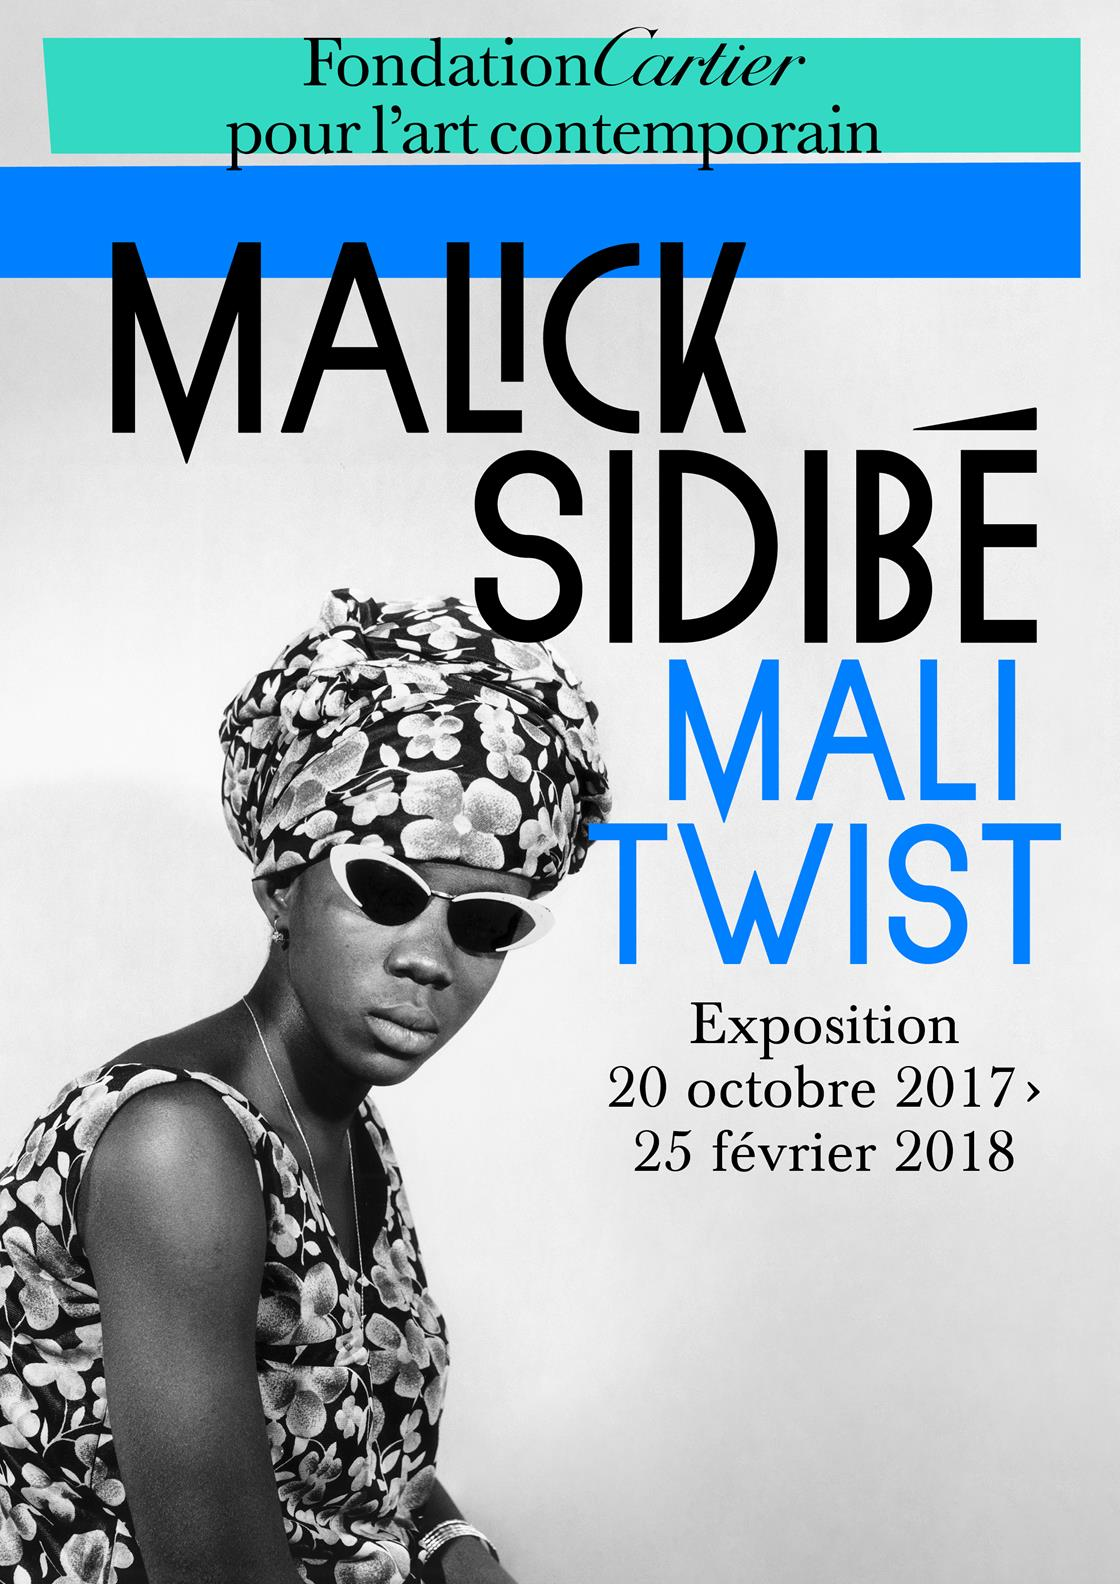 MALICK SIDIBE EXHIBITION